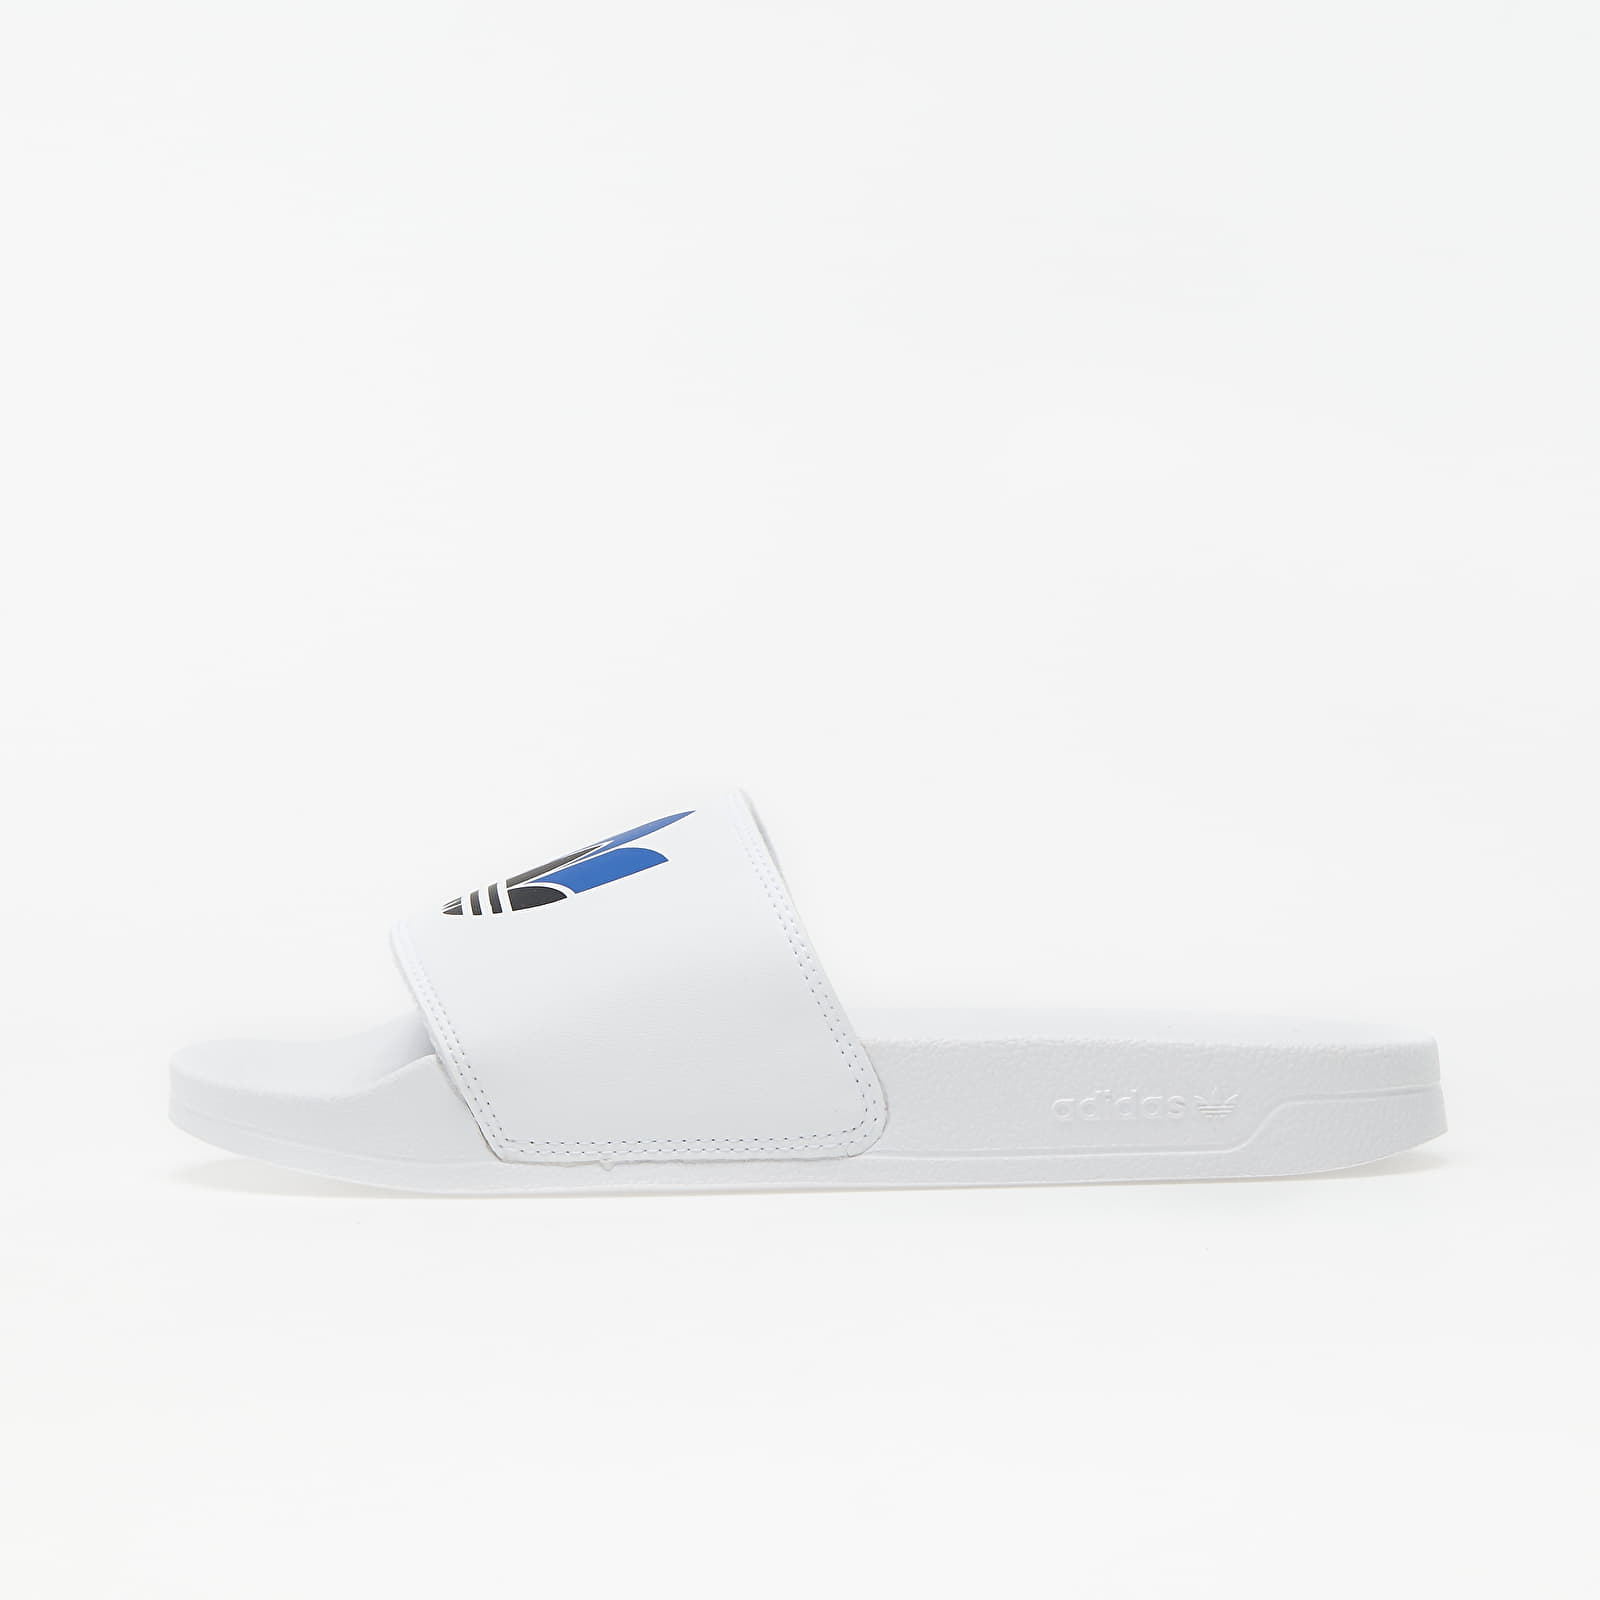 Γυναικεία παπούτσια adidas Adilette Lite W Ftw White/ Core Black/ Royal Blue